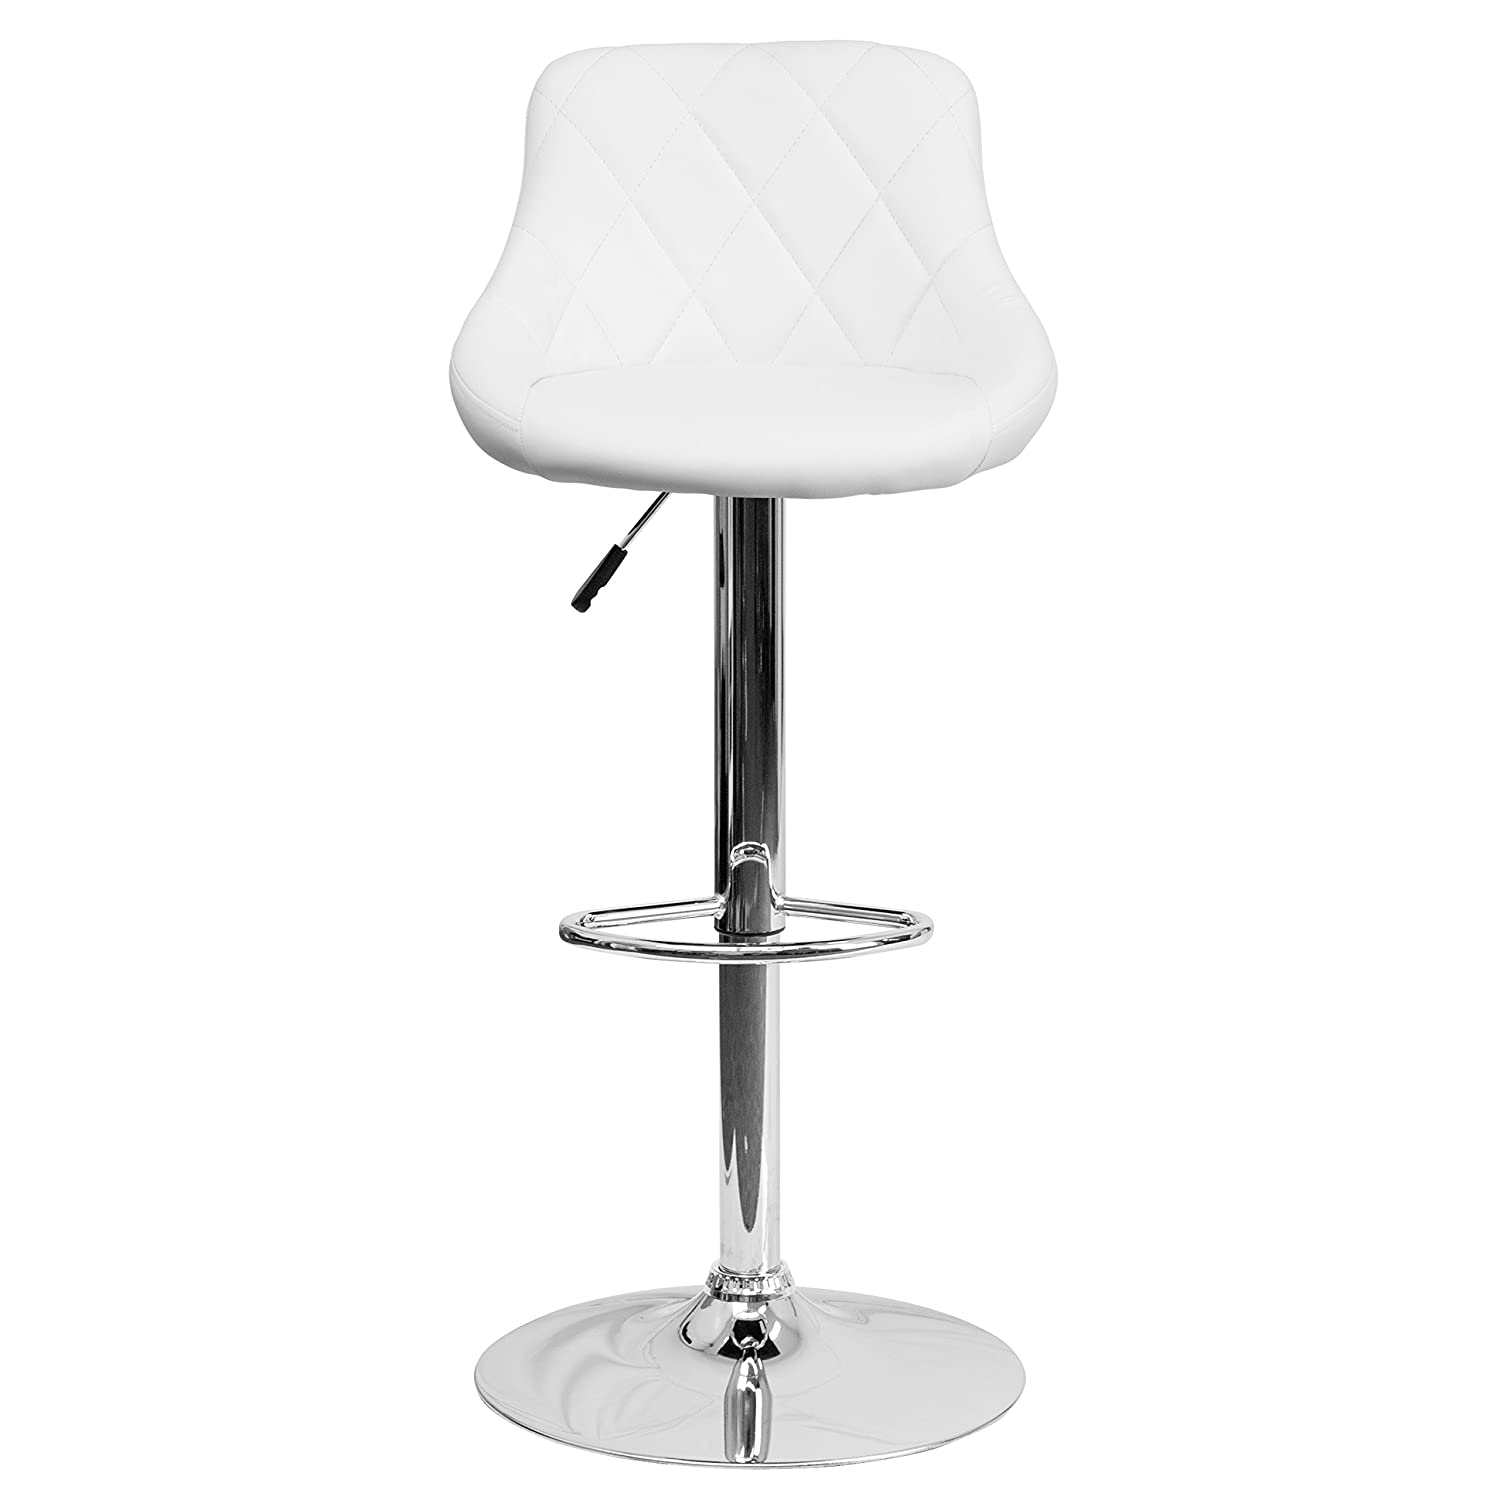 Amazoncom Flash Furniture Contemporary White Vinyl Bucket Seat Adjustable Height